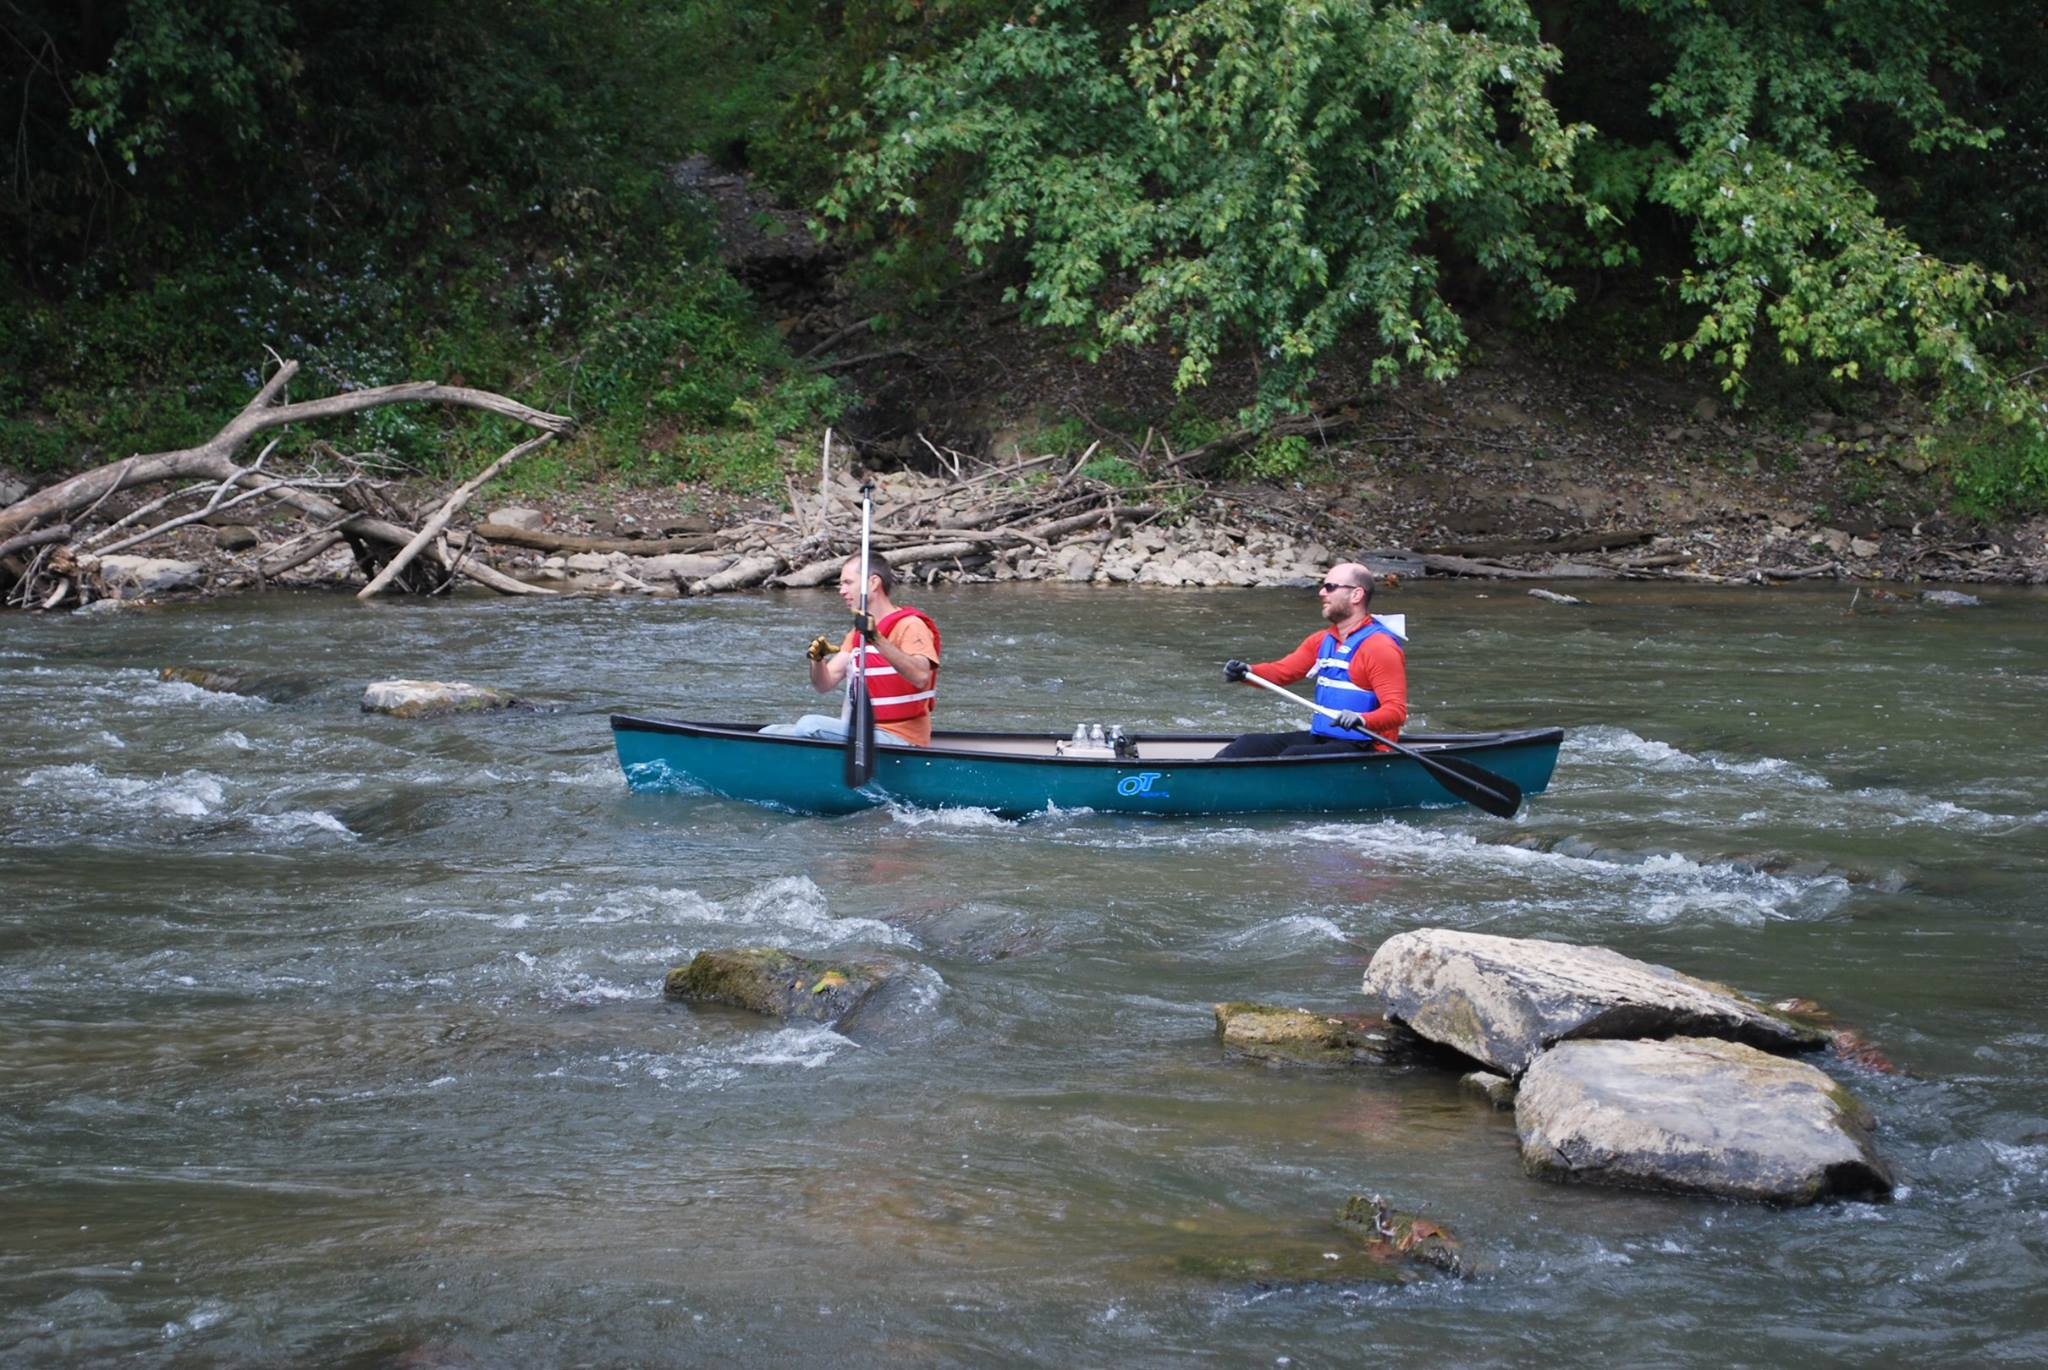 The Canoe and Kayak Race is an annual event, hosted by Union College, U Canoe and Barbourville Tourism. The race consists of 15 miles of river, ranging from calm water to beginner-level rapids. The race starts on the Knox County line bordering Bell County, and finishes in Knox County at the Thompson R.V. Park.  Thompson RV Park Check in or Registration of the day of event is: 9 to 9:30 am, 538 South Main St, Barbourville, KY 40906 Barbourville Tourism  For more information, contact tourism@barbourville.com.